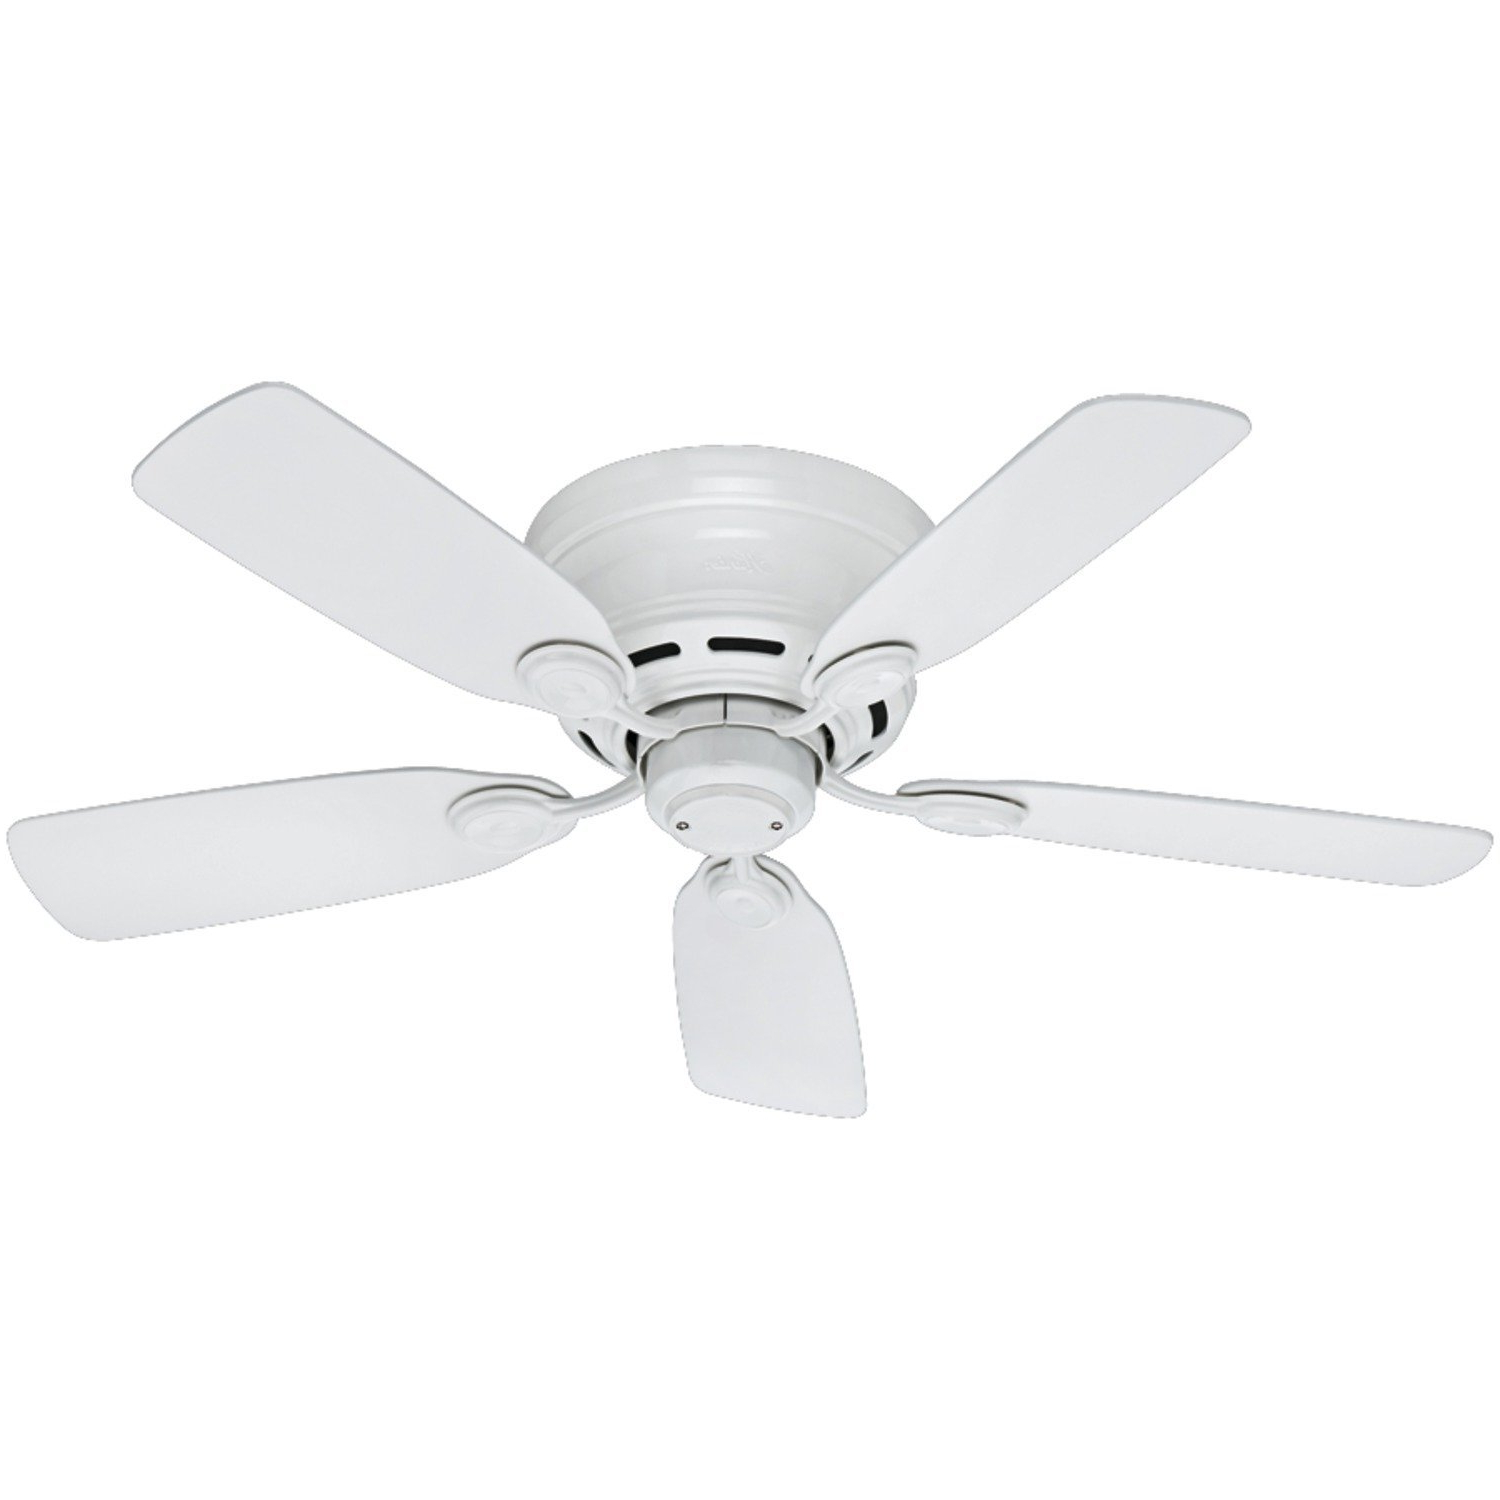 Conroy 5 Blade Ceiling Fans Intended For Popular Top 10 Best Ceiling Fans Reviews – Top Best Pro Review (View 7 of 20)